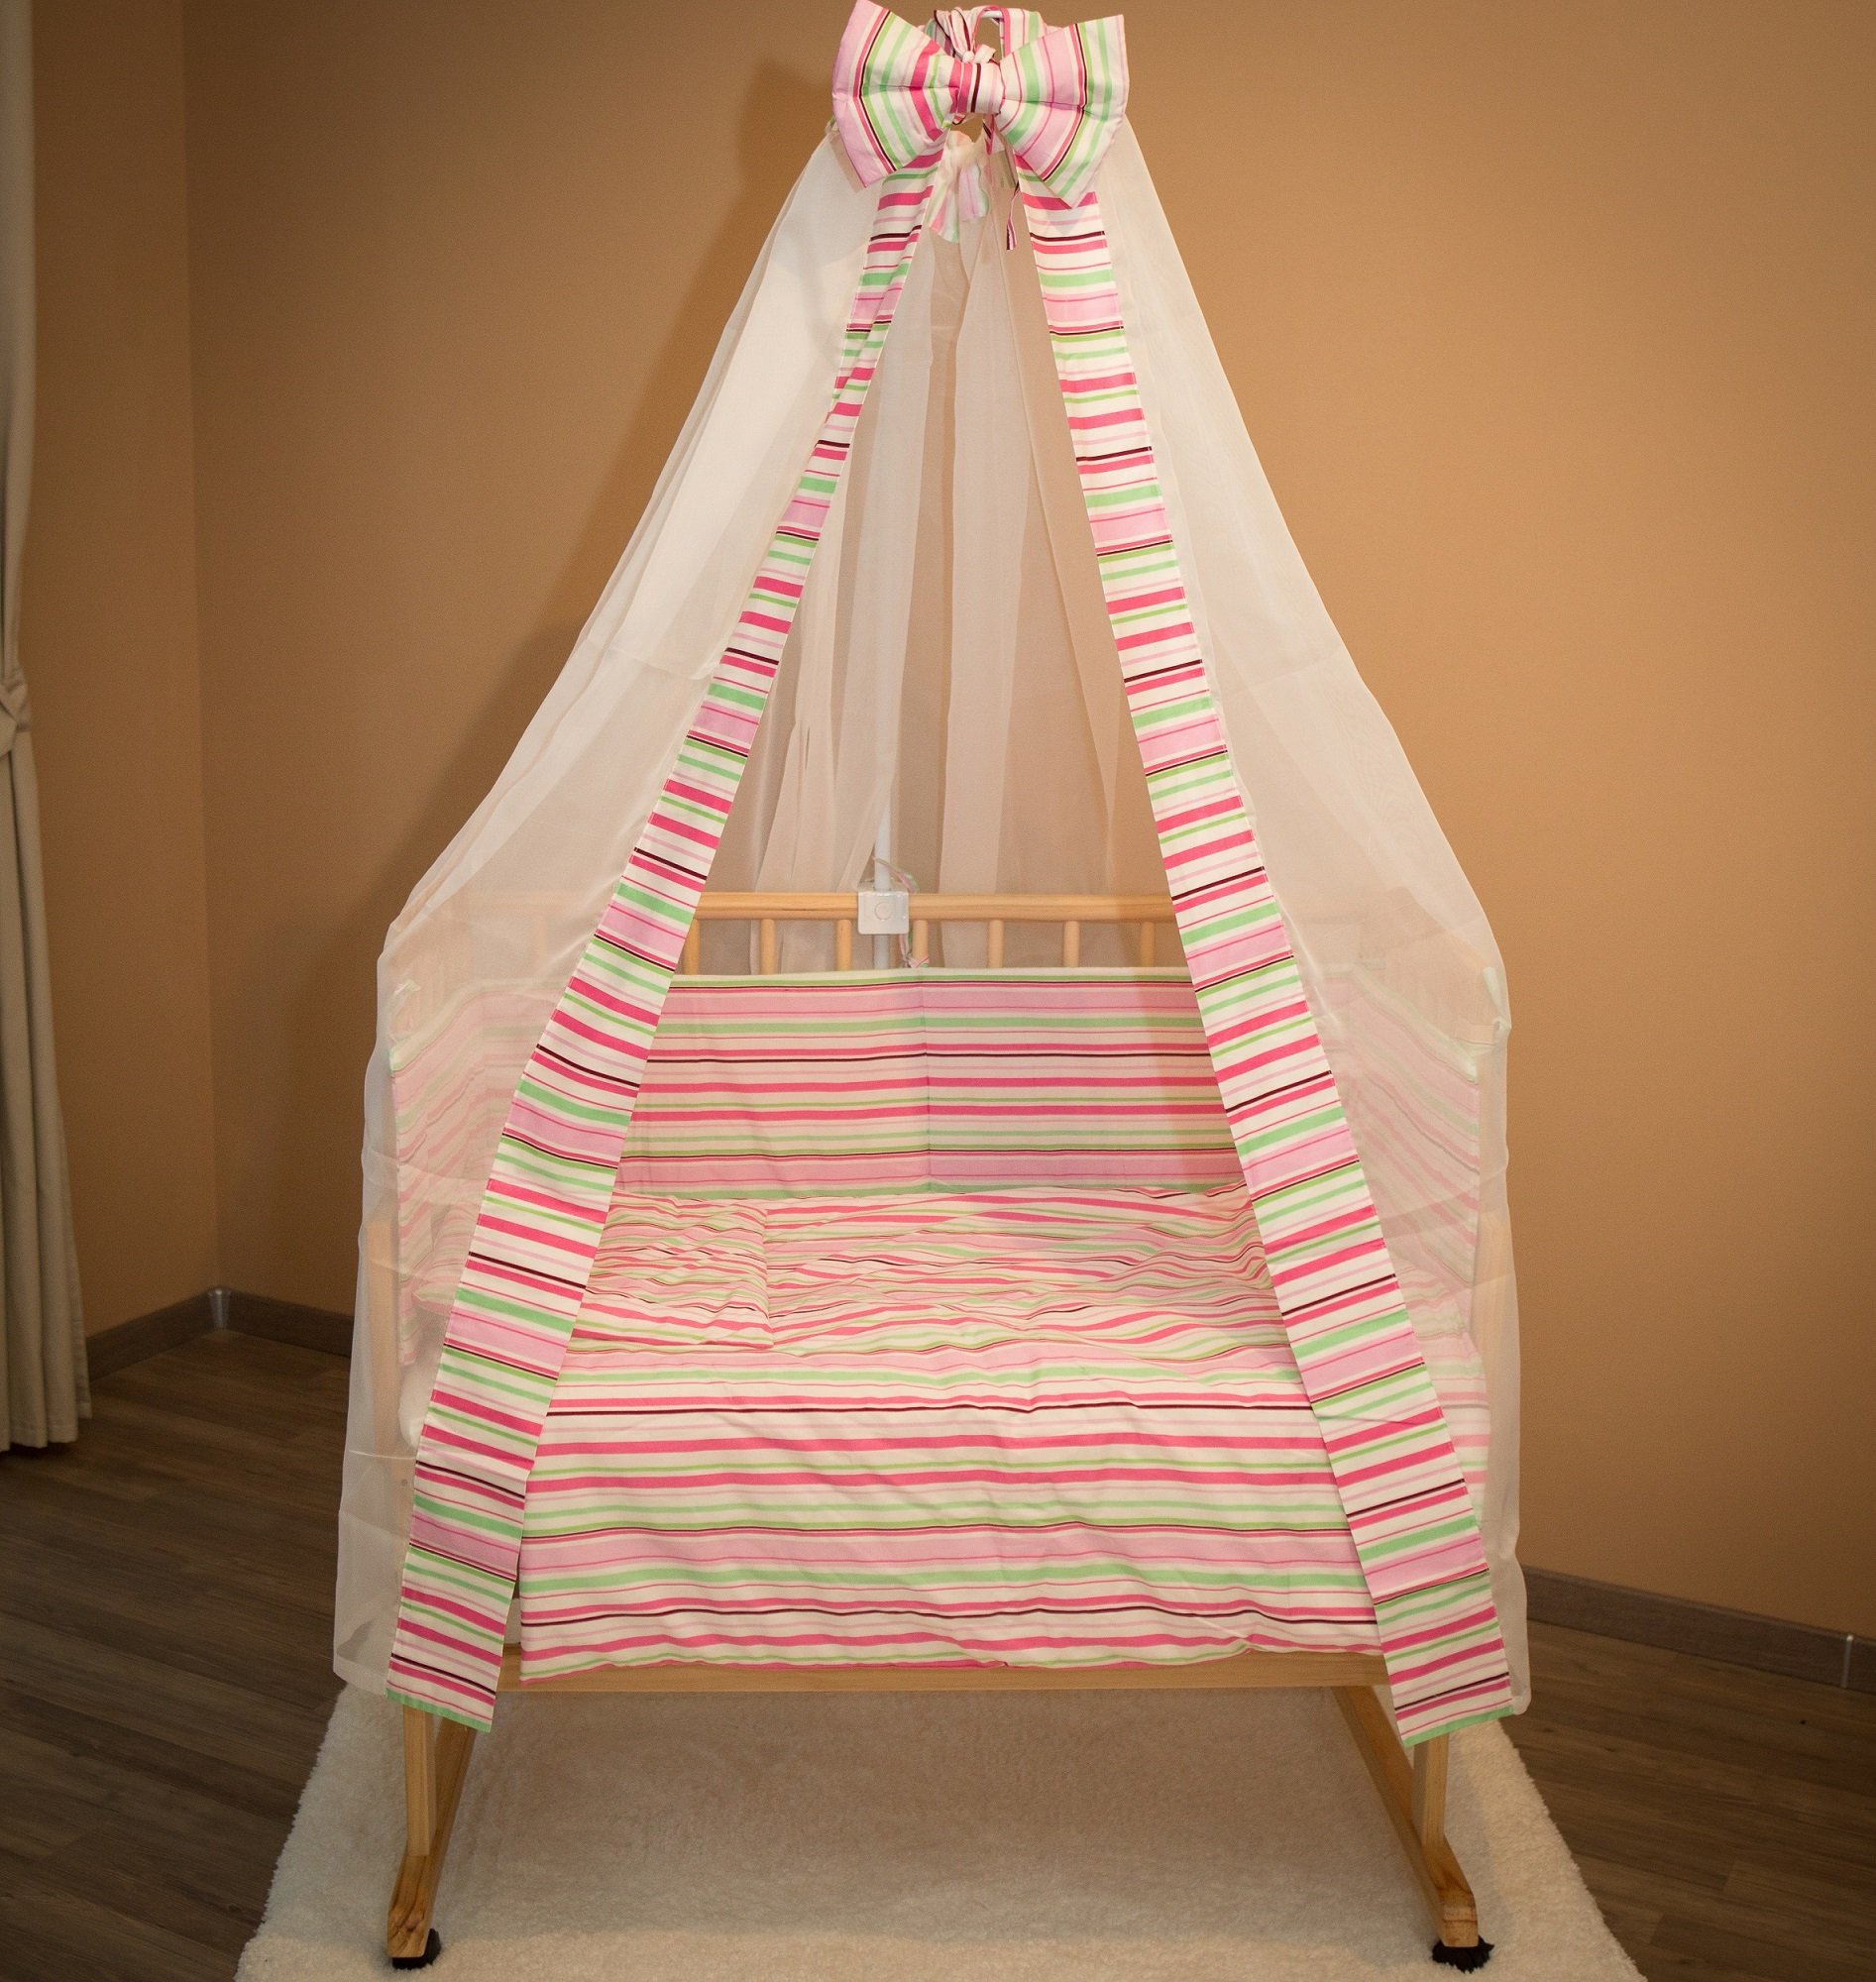 Bed side cot all inclusive 90x40cm, pink stripes Bambino World Main features:3 possible uses:Bed side cot (3 sides closed),Cot bed (4 sides closed),Child sofa;High quality pinewood;Height-adjustable duckboards;Inclusive bedlinen set, canopy and mattress; Bed side cot with large lying space 90 x 40 or 90 x 55cm (if you use the included additional board);Made of high-quality pinewood, clear-varnished with saliva-resistant toy´s paint with a high proportion of wax;Inclusive additional lateral part for use as a cot bed;Height-adjustable duckboards from 17 to 46cm to fit to the height of the parent´s bed; 4 movable castors, 2 with a brake;Overall dimensions 93 x 44/56 x 81cm; Accessories included in our offer:Mattress:High quality mattresses: soft foam polyurethane,Dimensions: 90 x (40+15)cm,Mattress cover: 100% cotton,Quilted on one side with washable fabric,Removable, machine washable at 60°C, 2